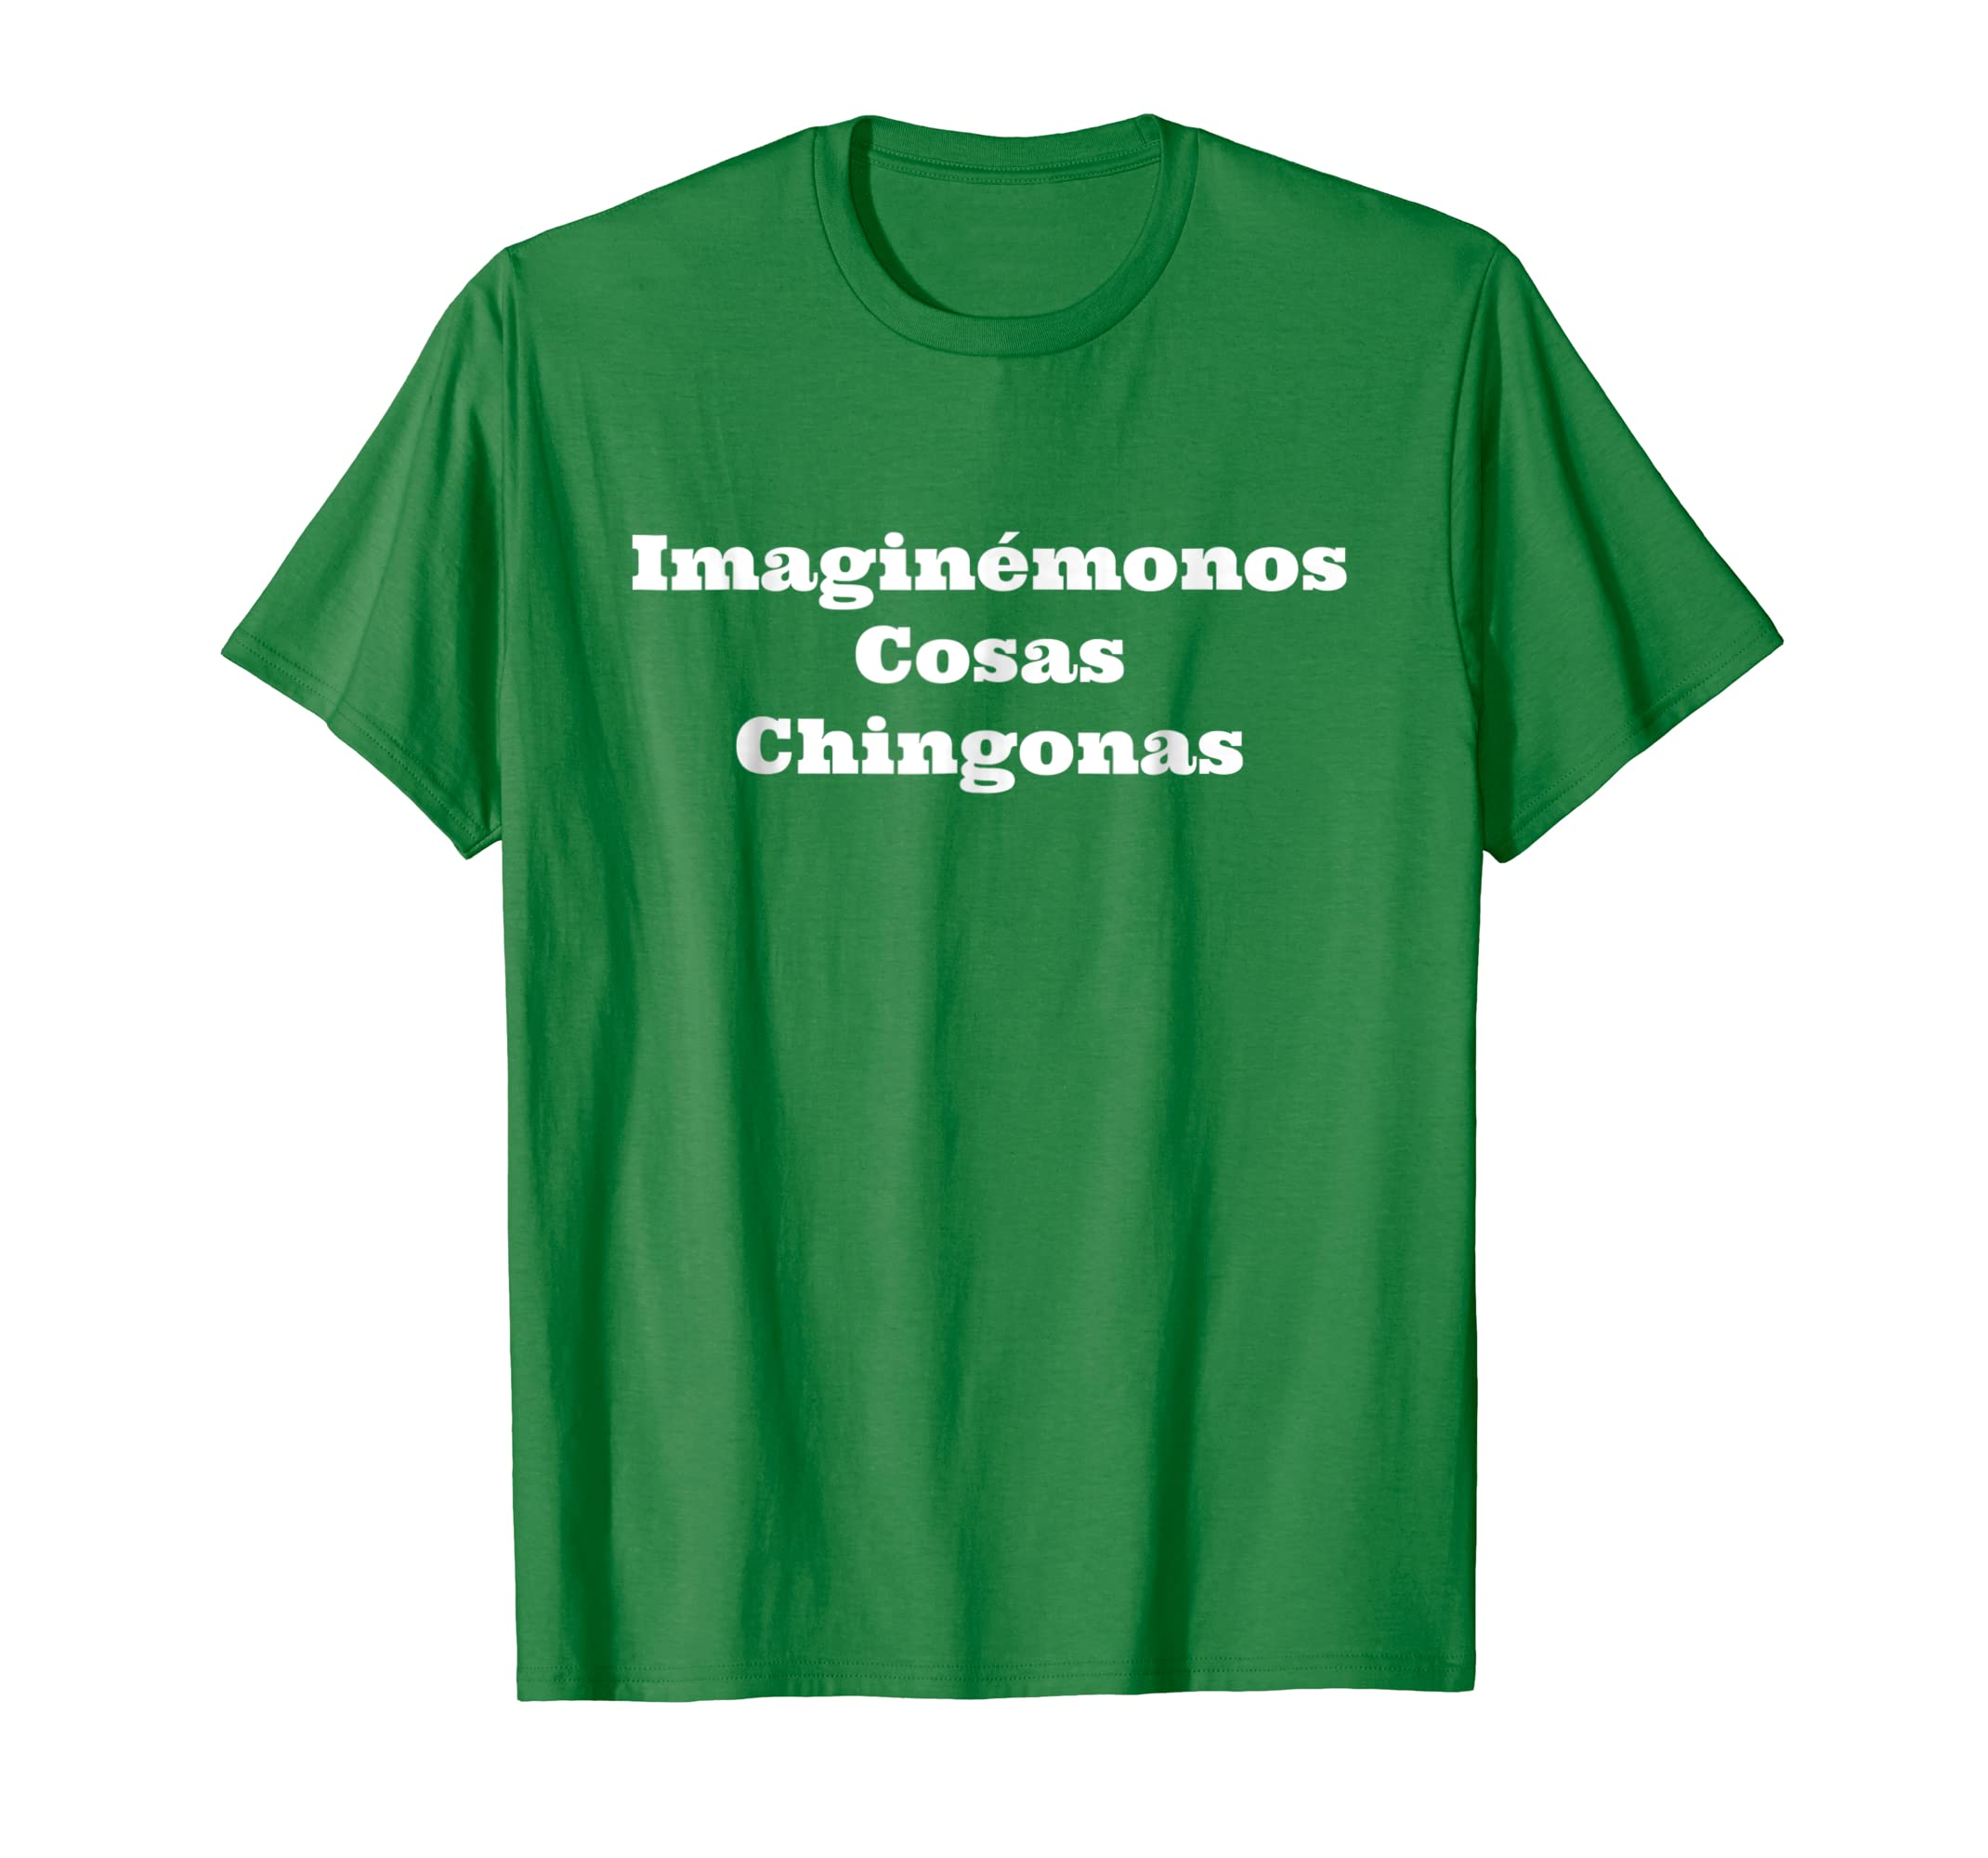 Amazon.com: Imaginemonos Cosas Chingonas - Camiseta Mexico Chistosa: Clothing